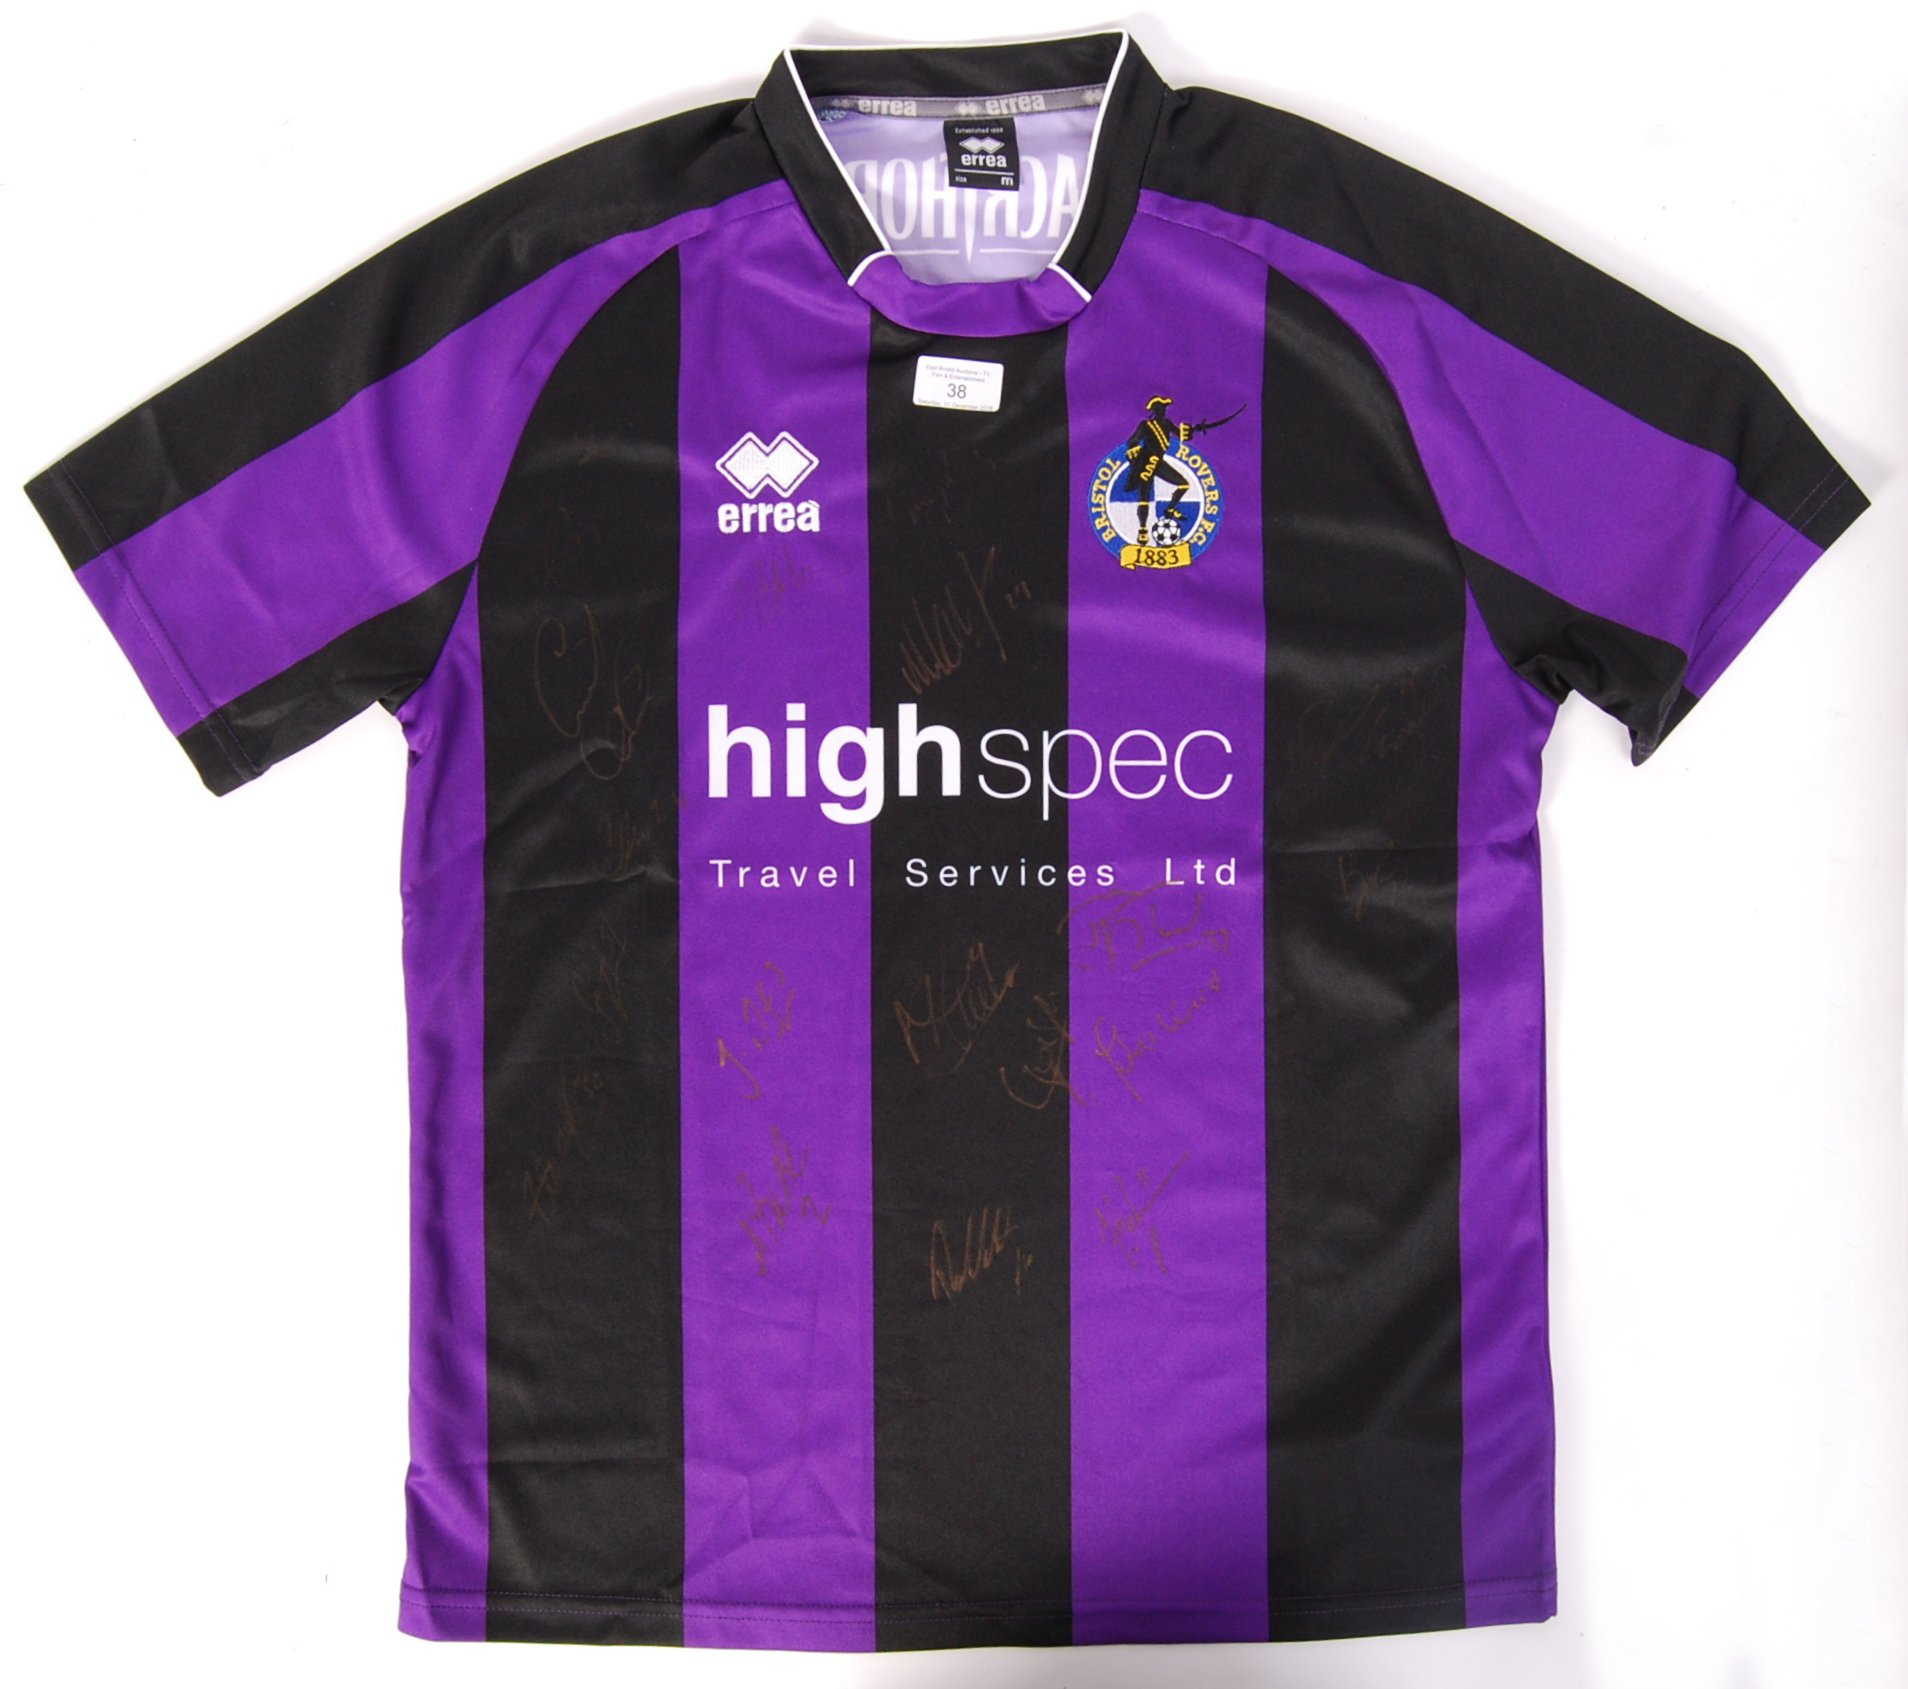 Lot 36 - BRISTOL ROVERS FOOTBALL AUTOGRAPHED SHIRT